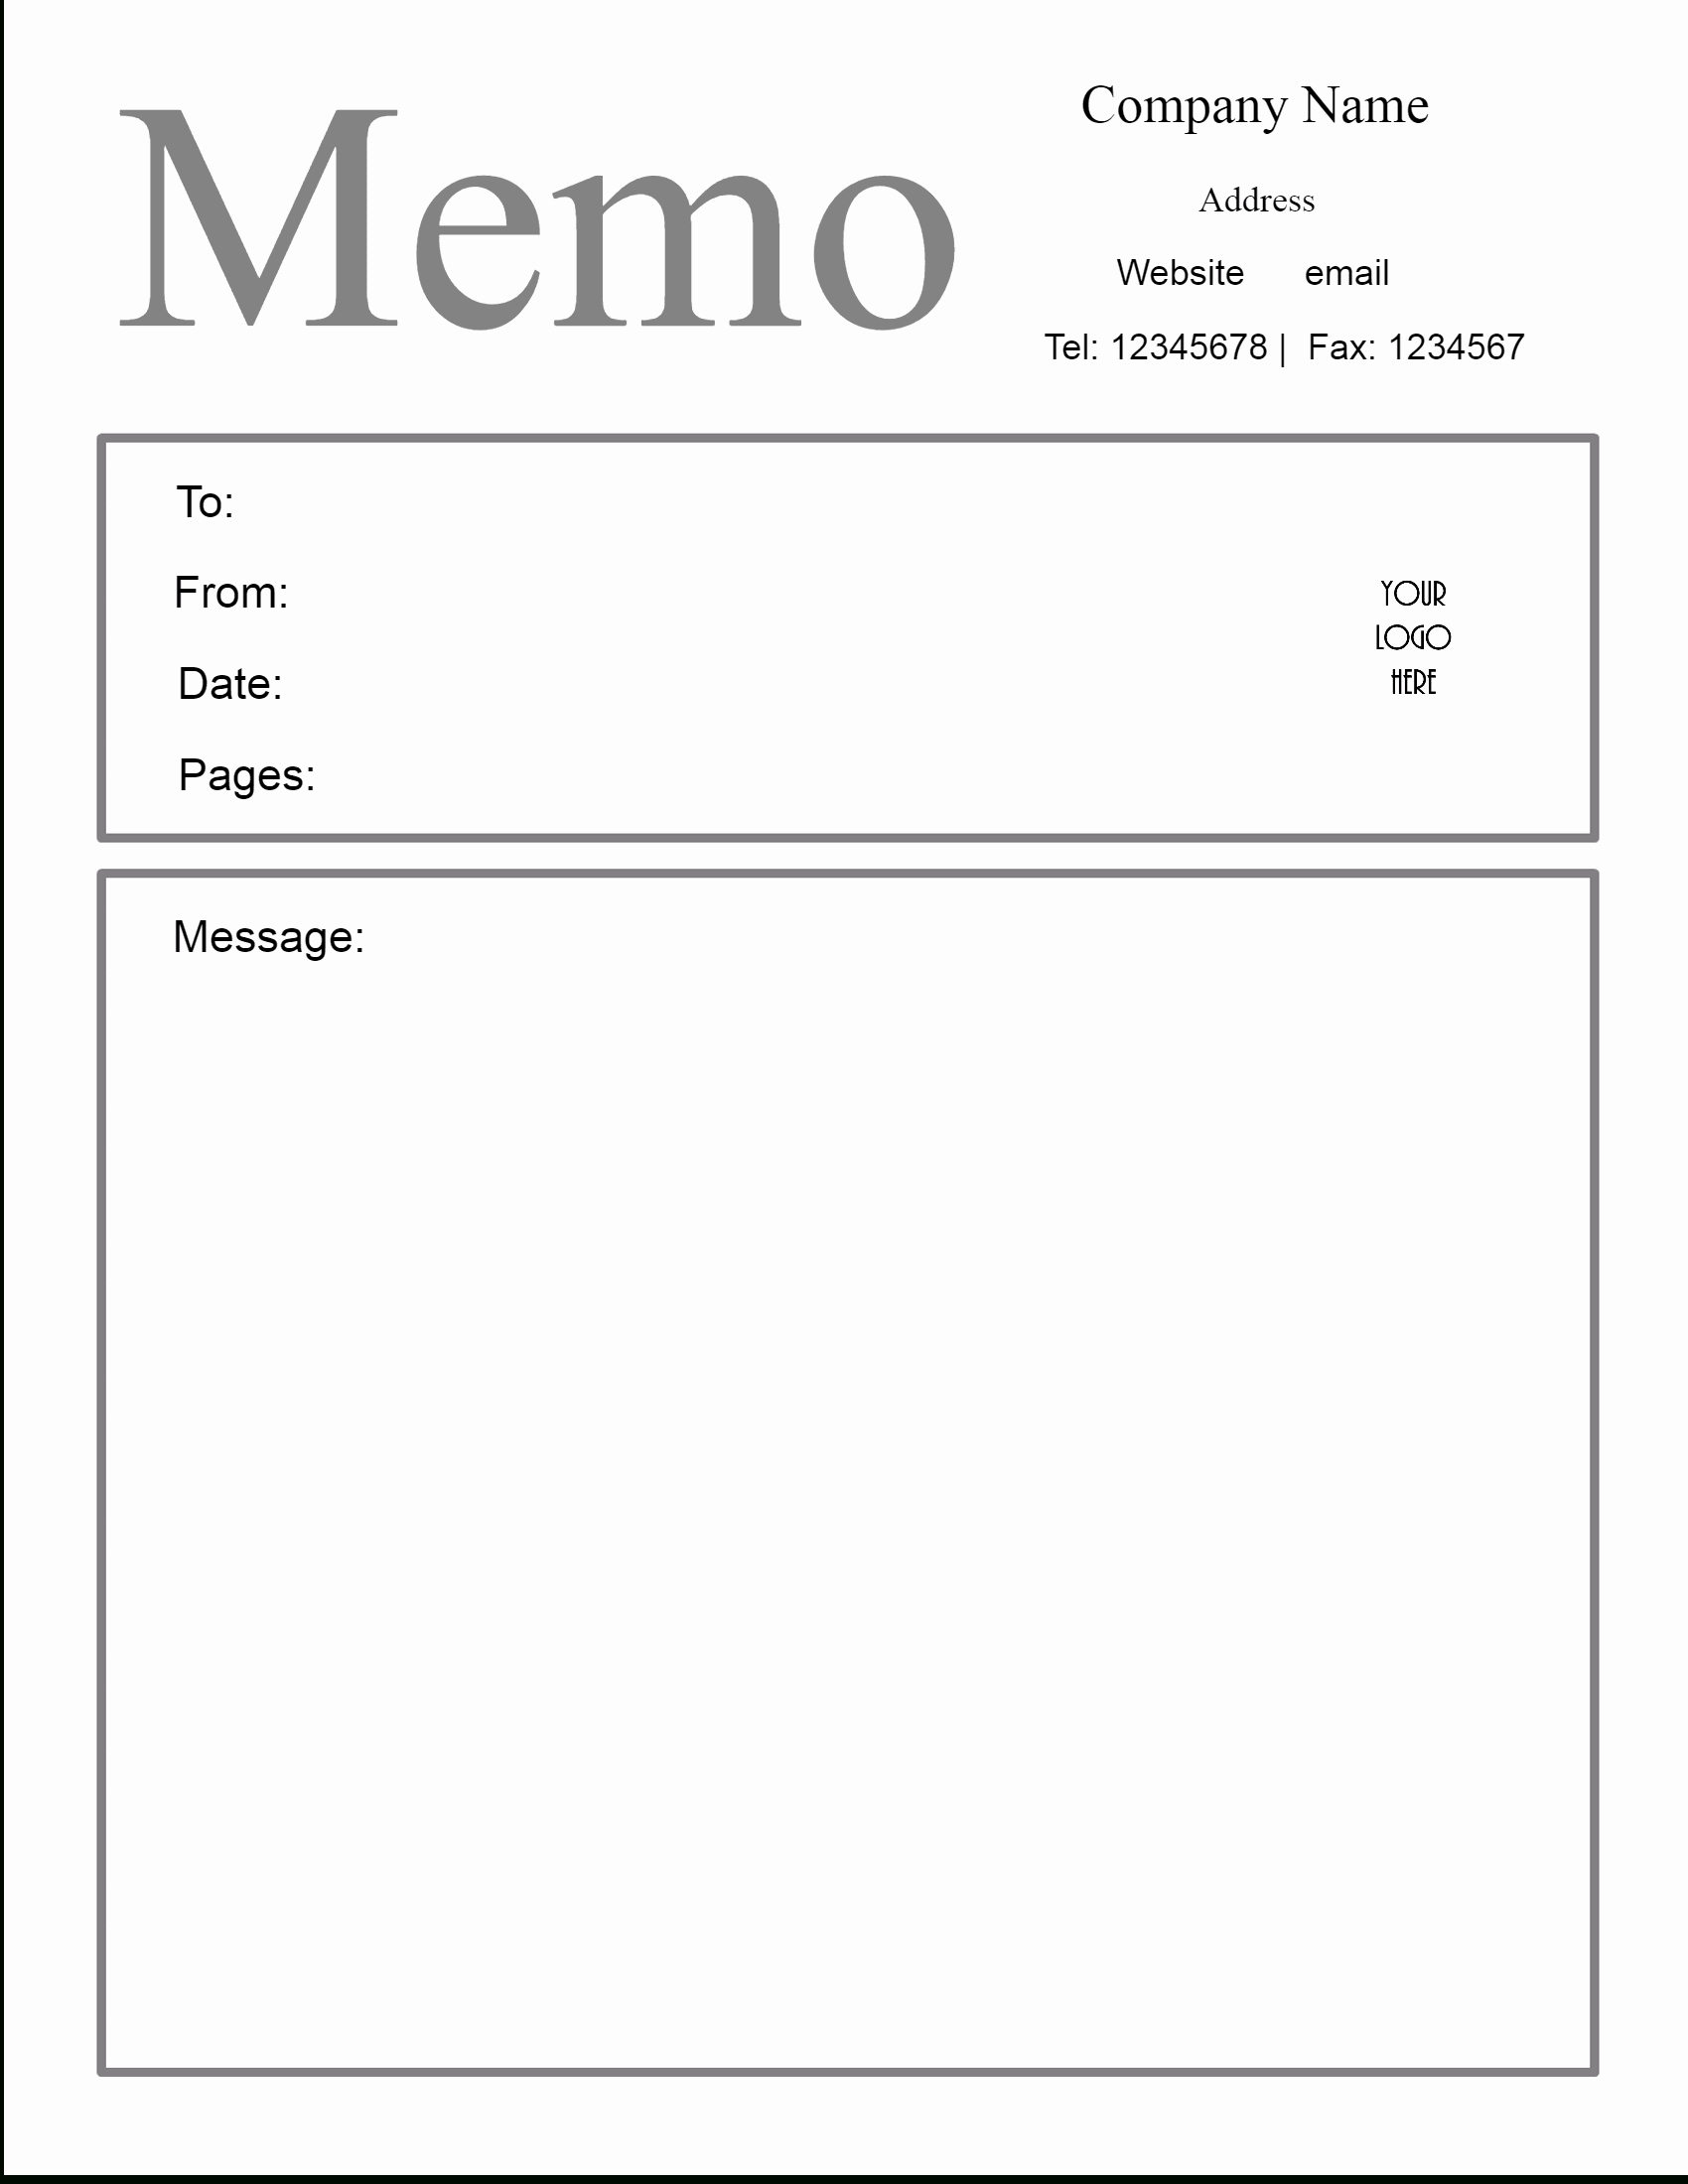 Memo Template Google Docs Informal Memo Template Madrat Co